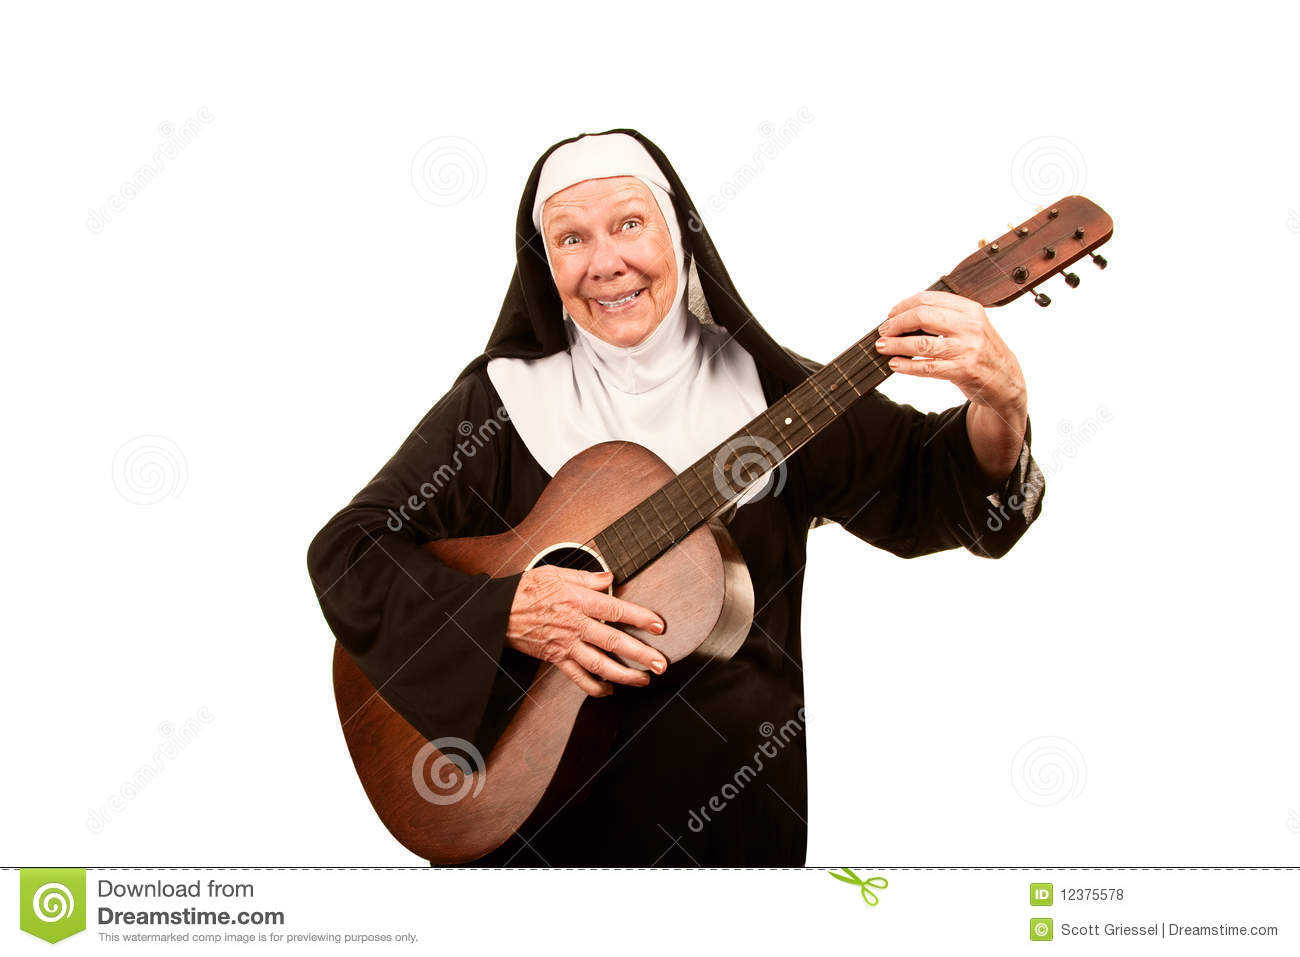 free download character map with Royalty Free Stock Photos Funny Singing Nun Image12375578 on Royalty Free Stock Photography Cartoon Peach Vector Illustration Image35813717 further Number 8 Printable Coloring Sheets For Preschoolers together with Royalty Free Stock Photography Beautiful Girl Image11162457 likewise Tera further Royalty Free Stock Photos Funny Singing Nun Image12375578.